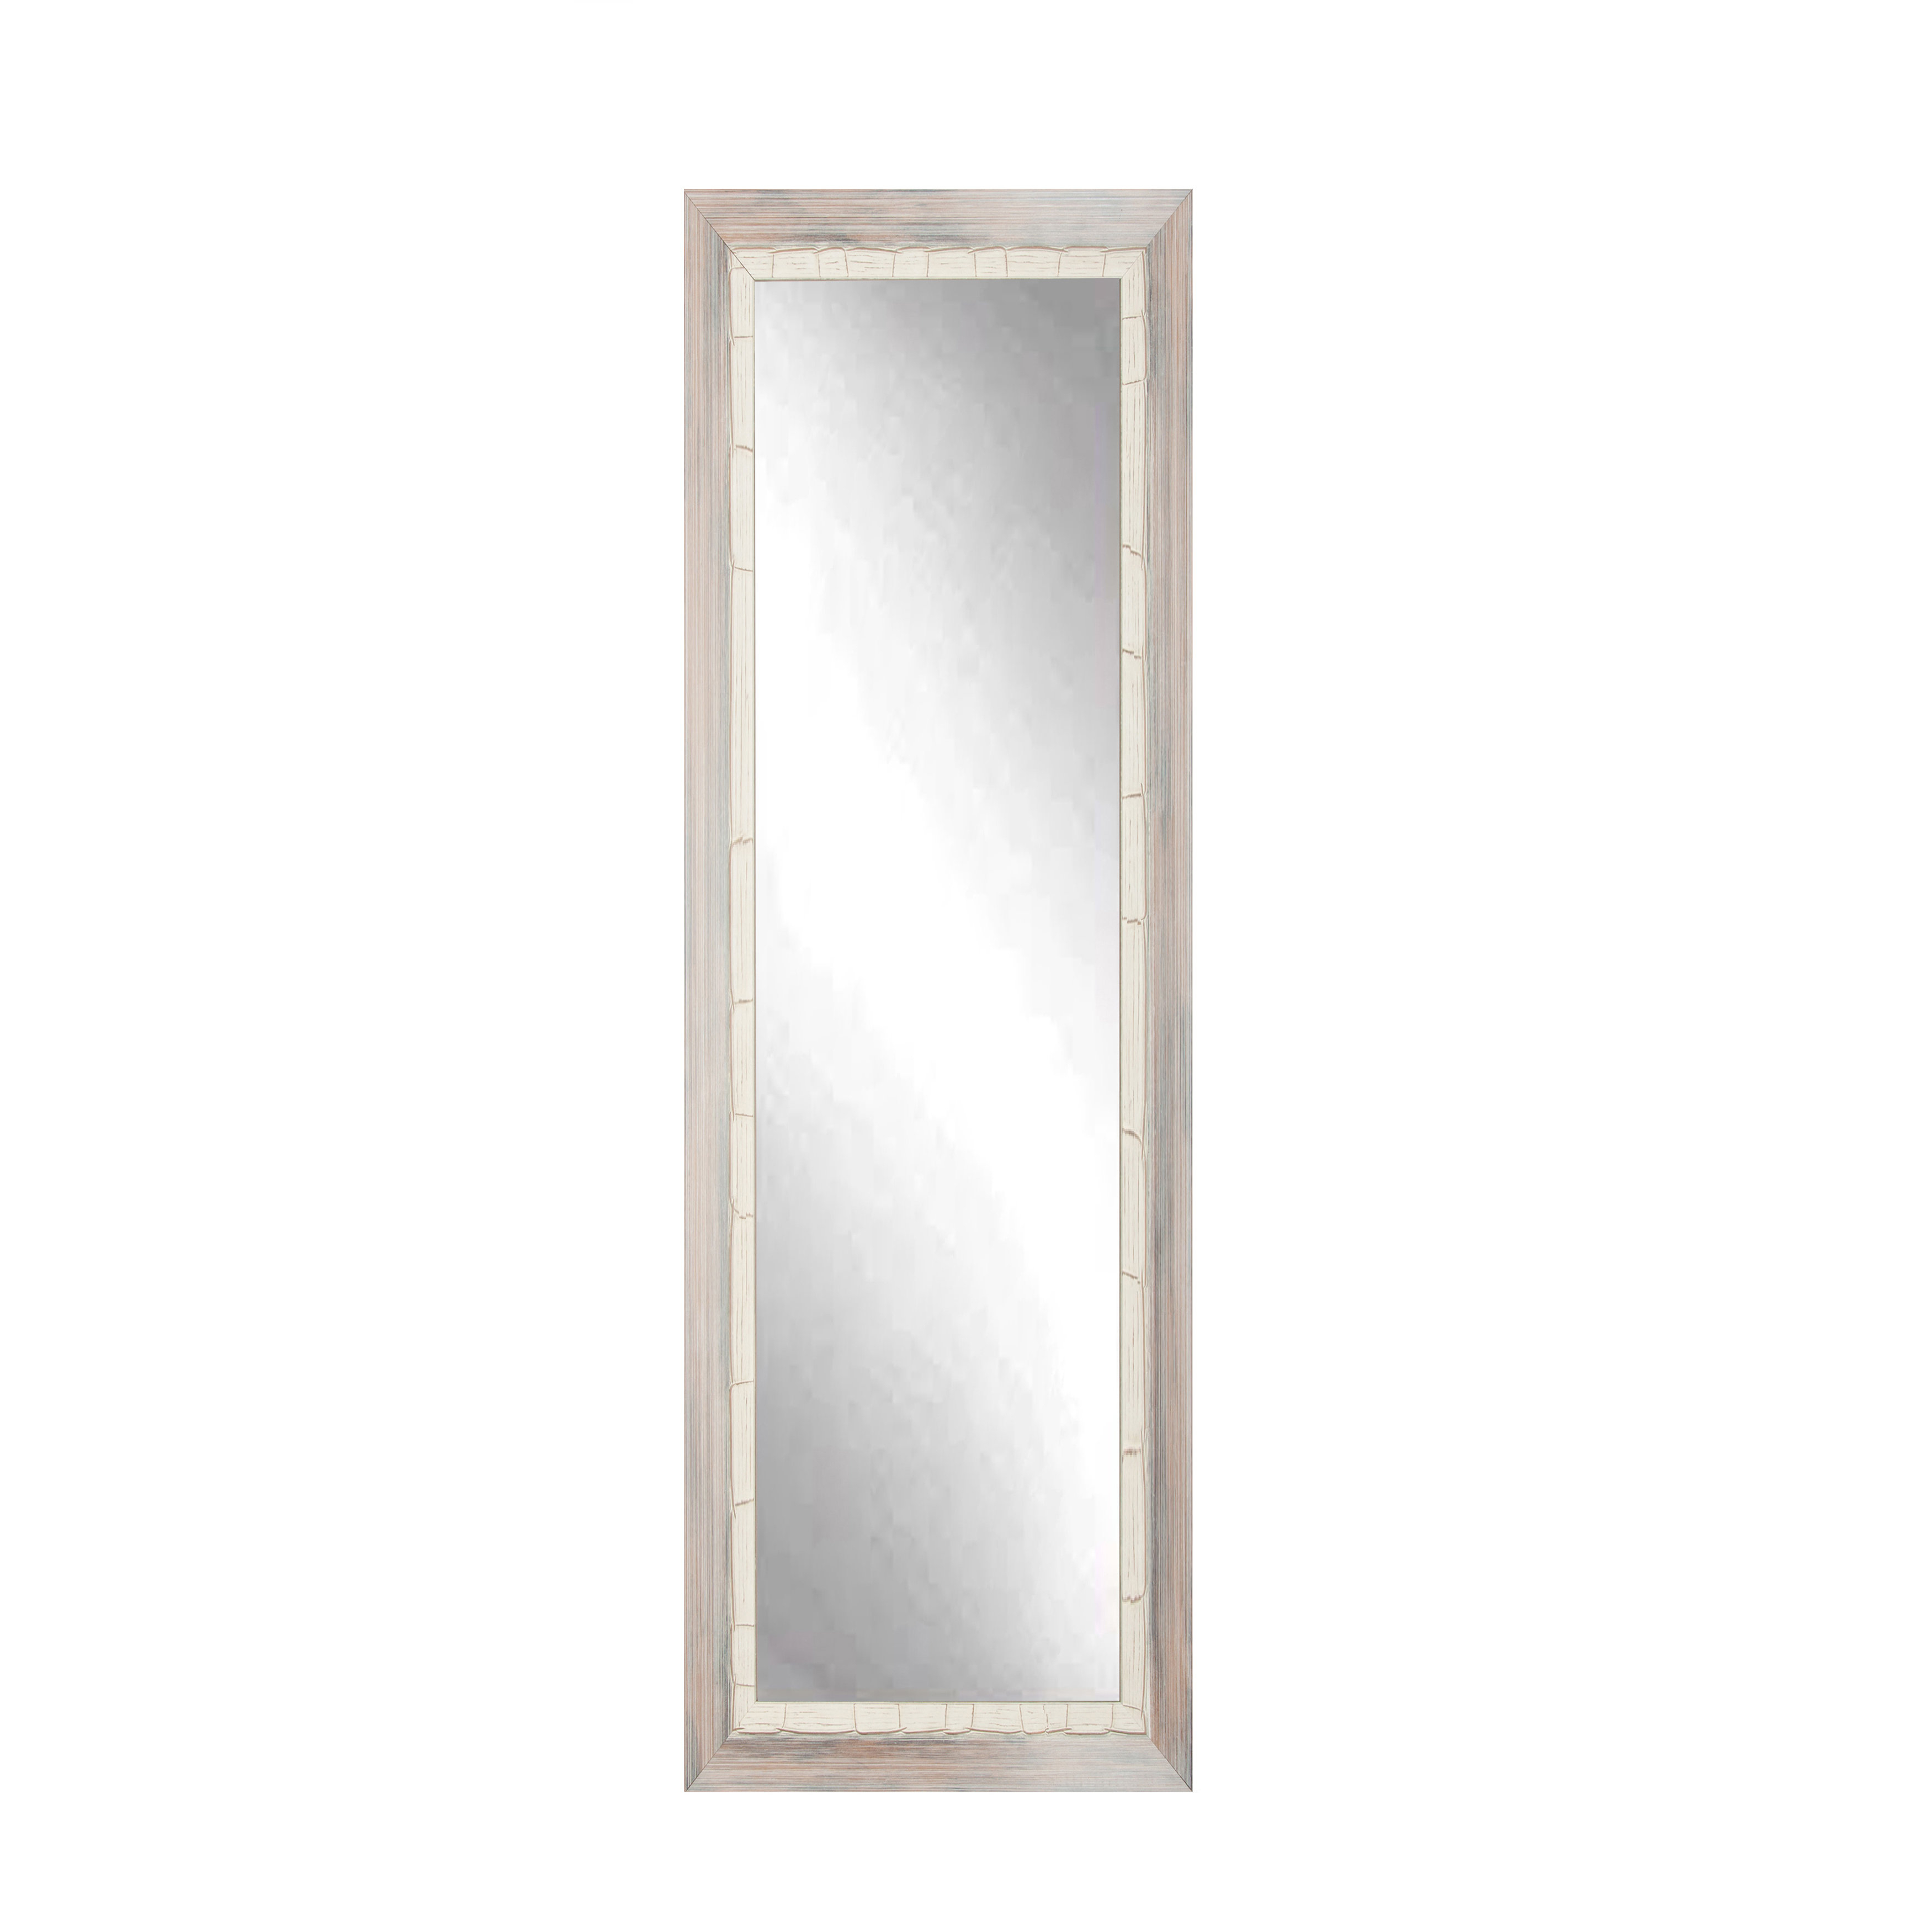 Current Trend Full Length Wall Mirror With Regard To Epinal Shabby Elegance Wall Mirrors (View 10 of 20)